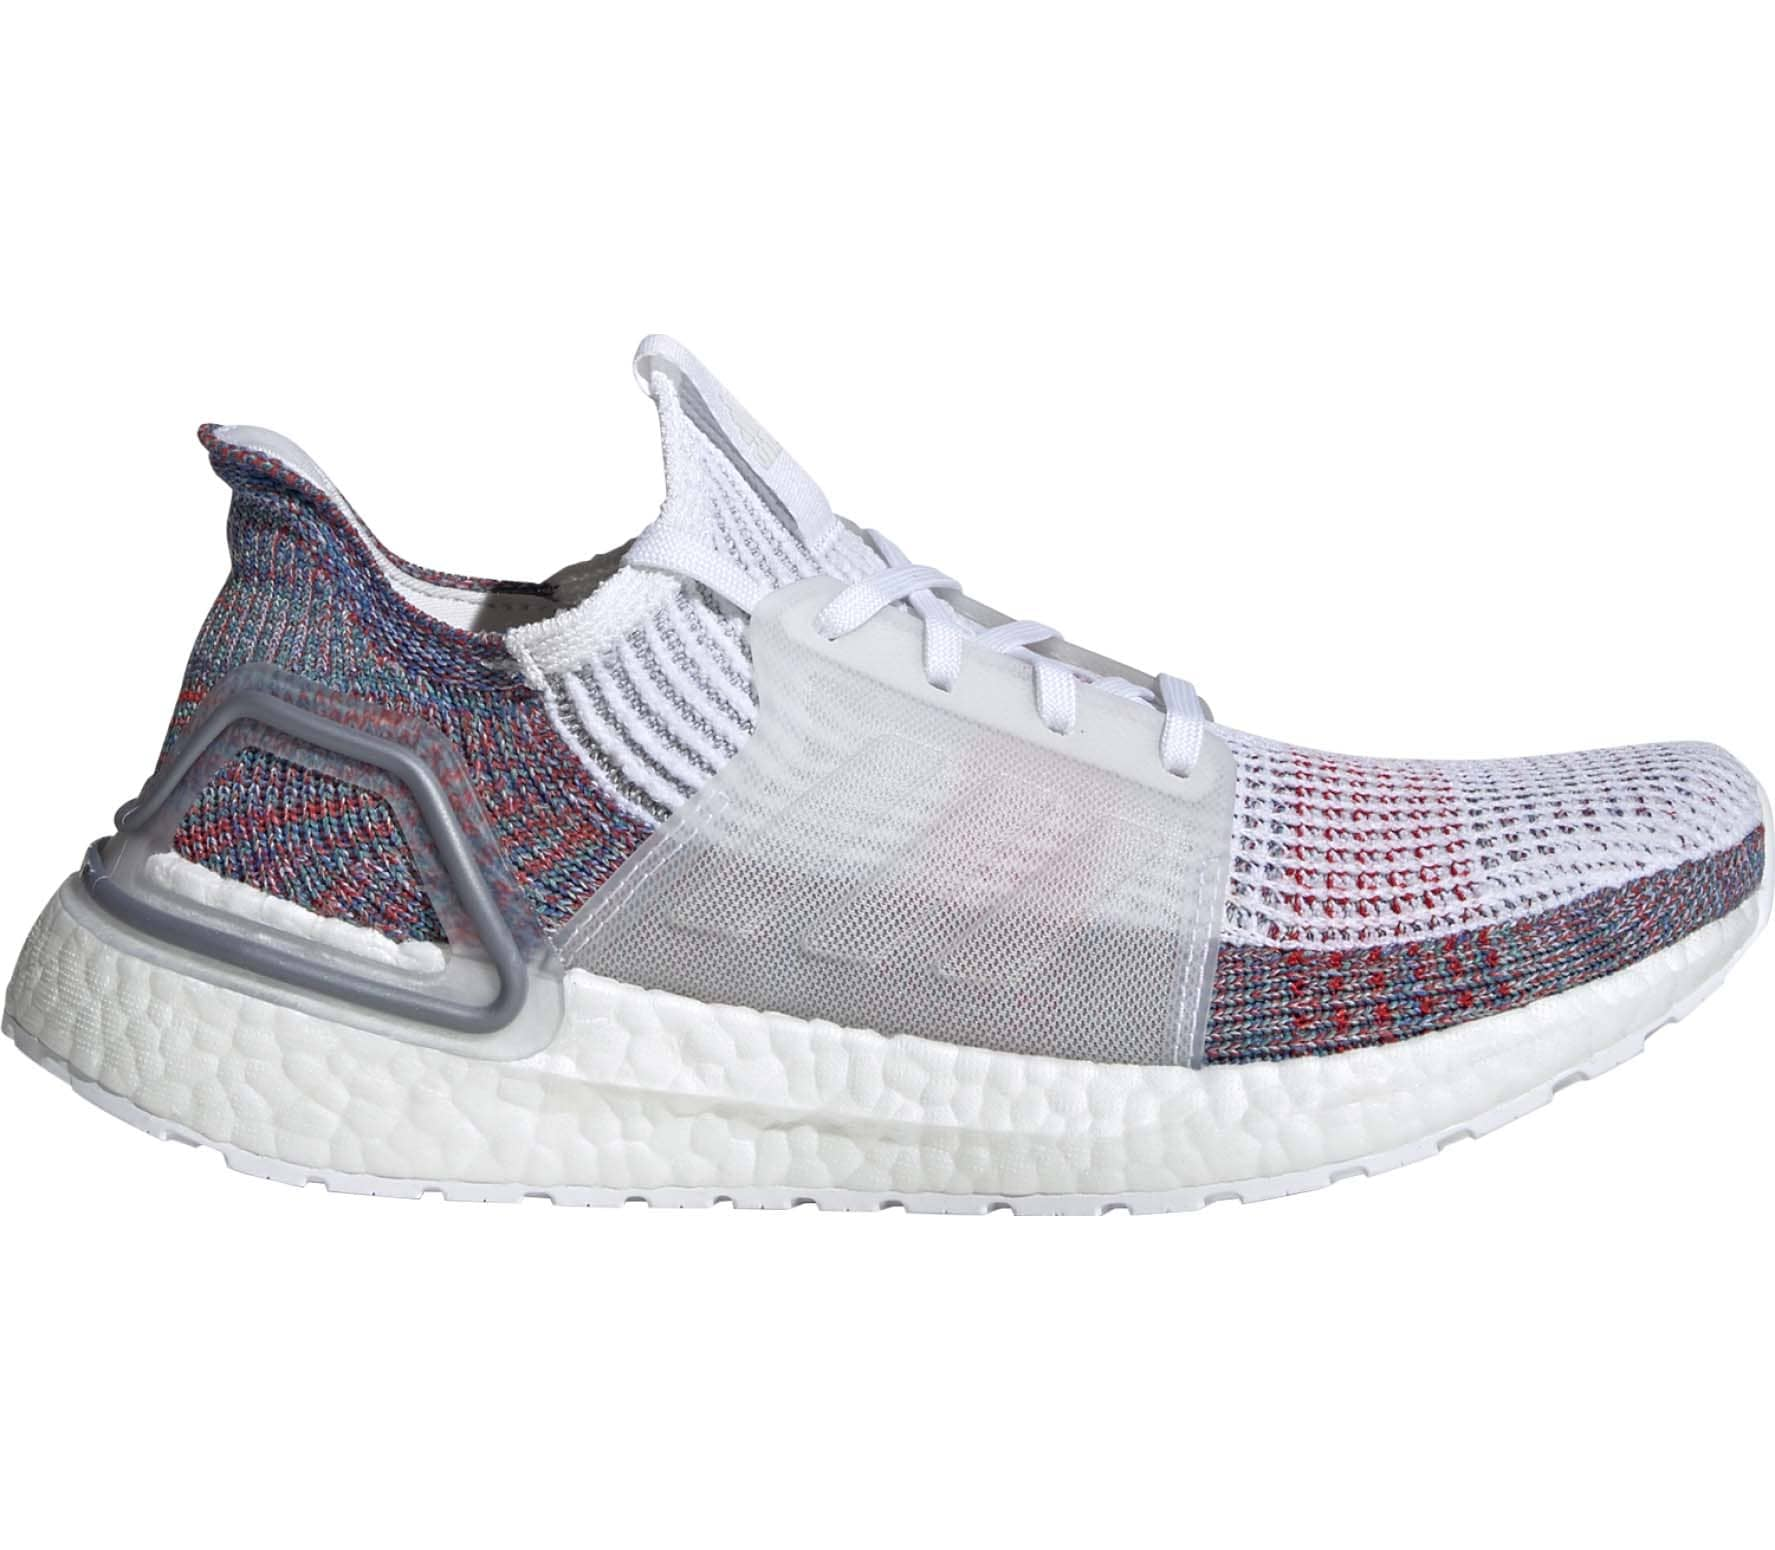 adidas - Ultraboost 19 'Refract' women's running shoes (white)